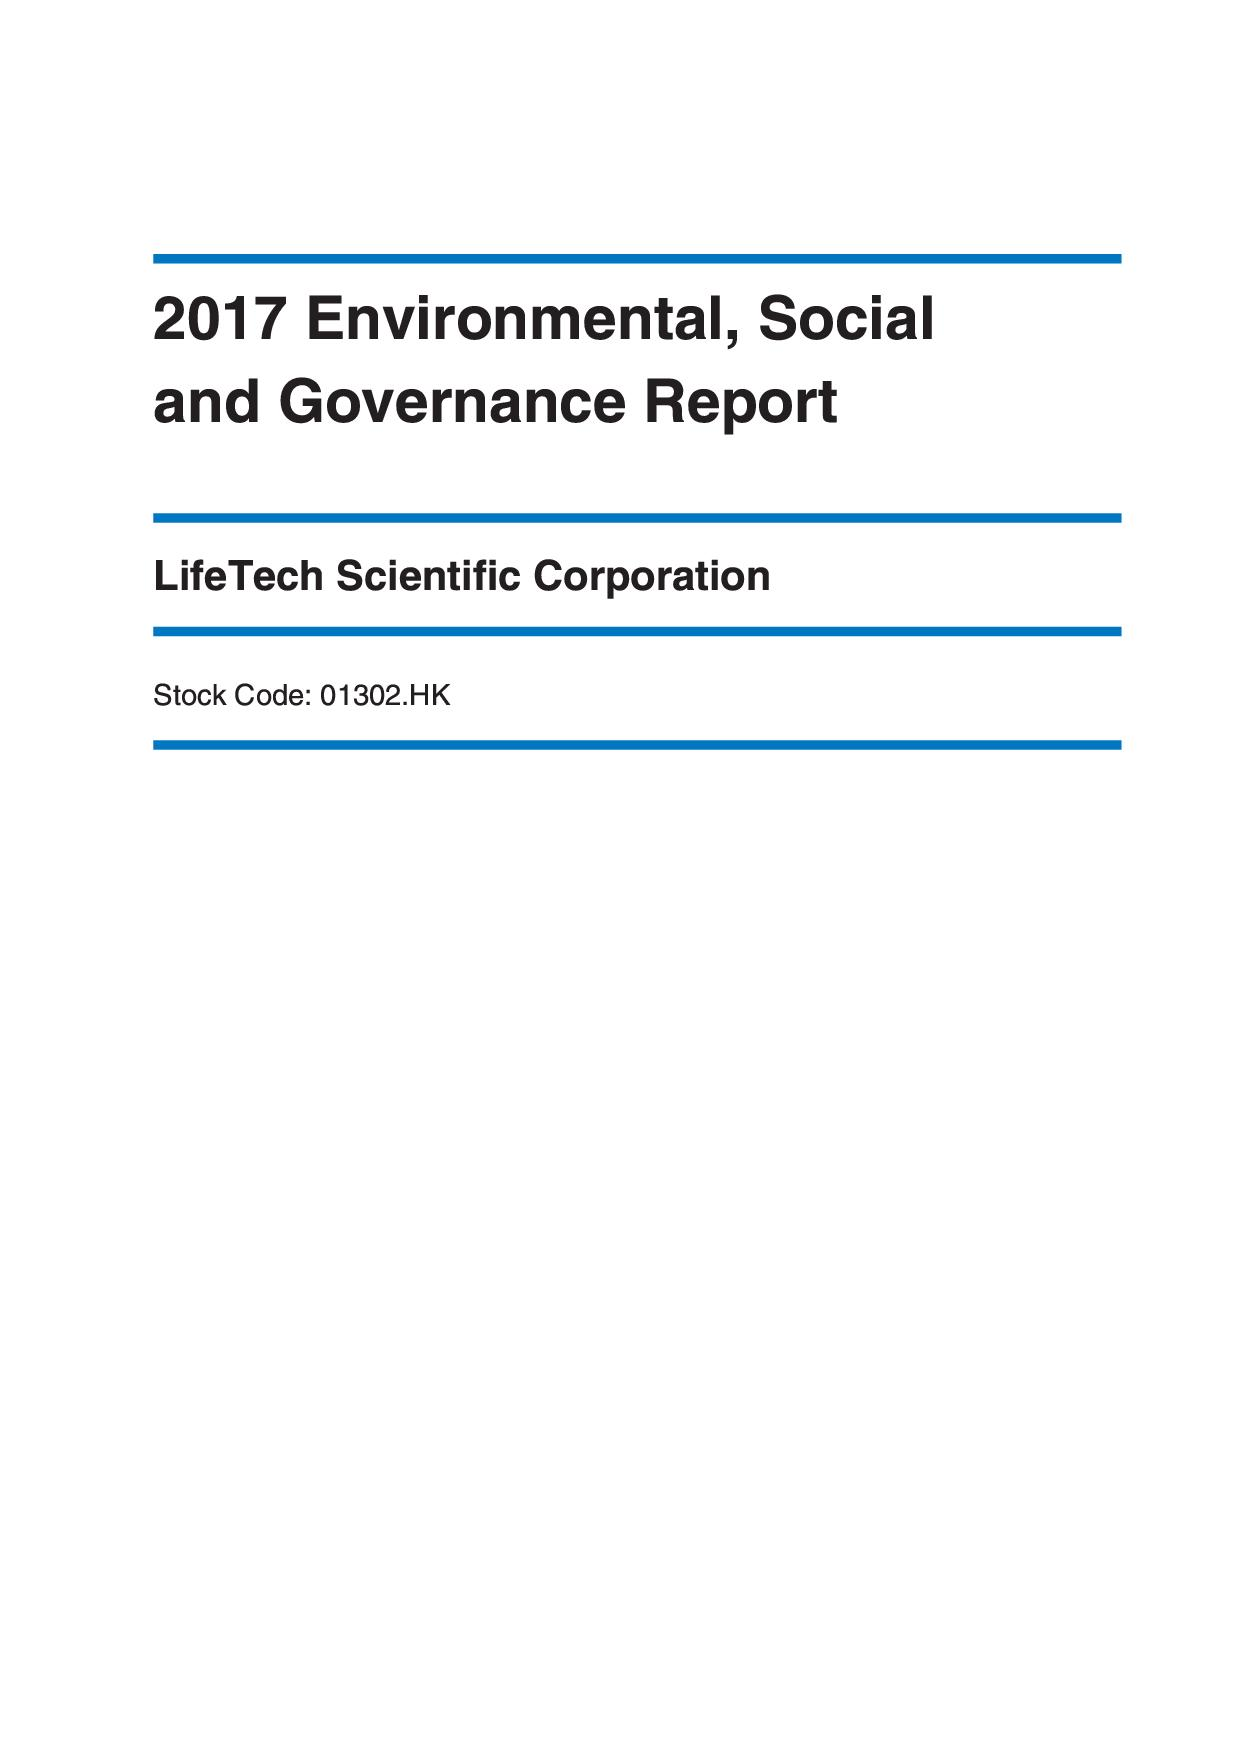 LifeTech Scientific Corporation